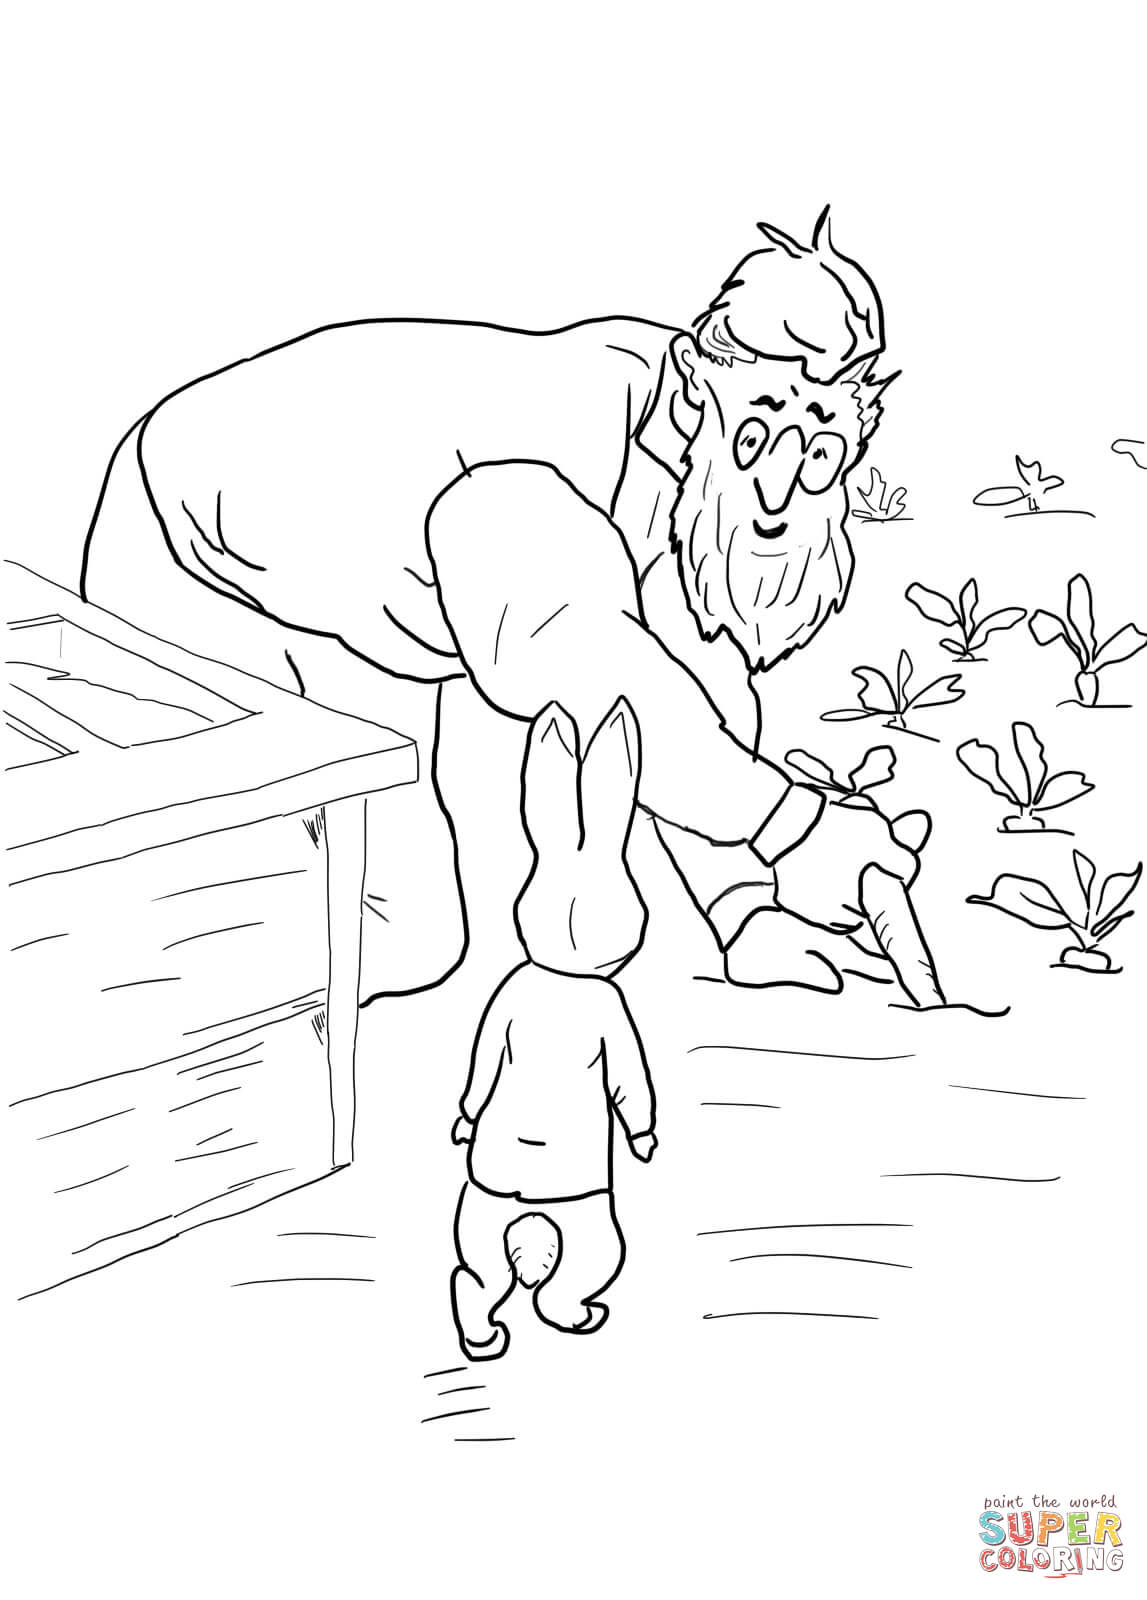 1147x1600 Peter Rabbit Coloring Pages With Wallpapers Android Peter Rabbit